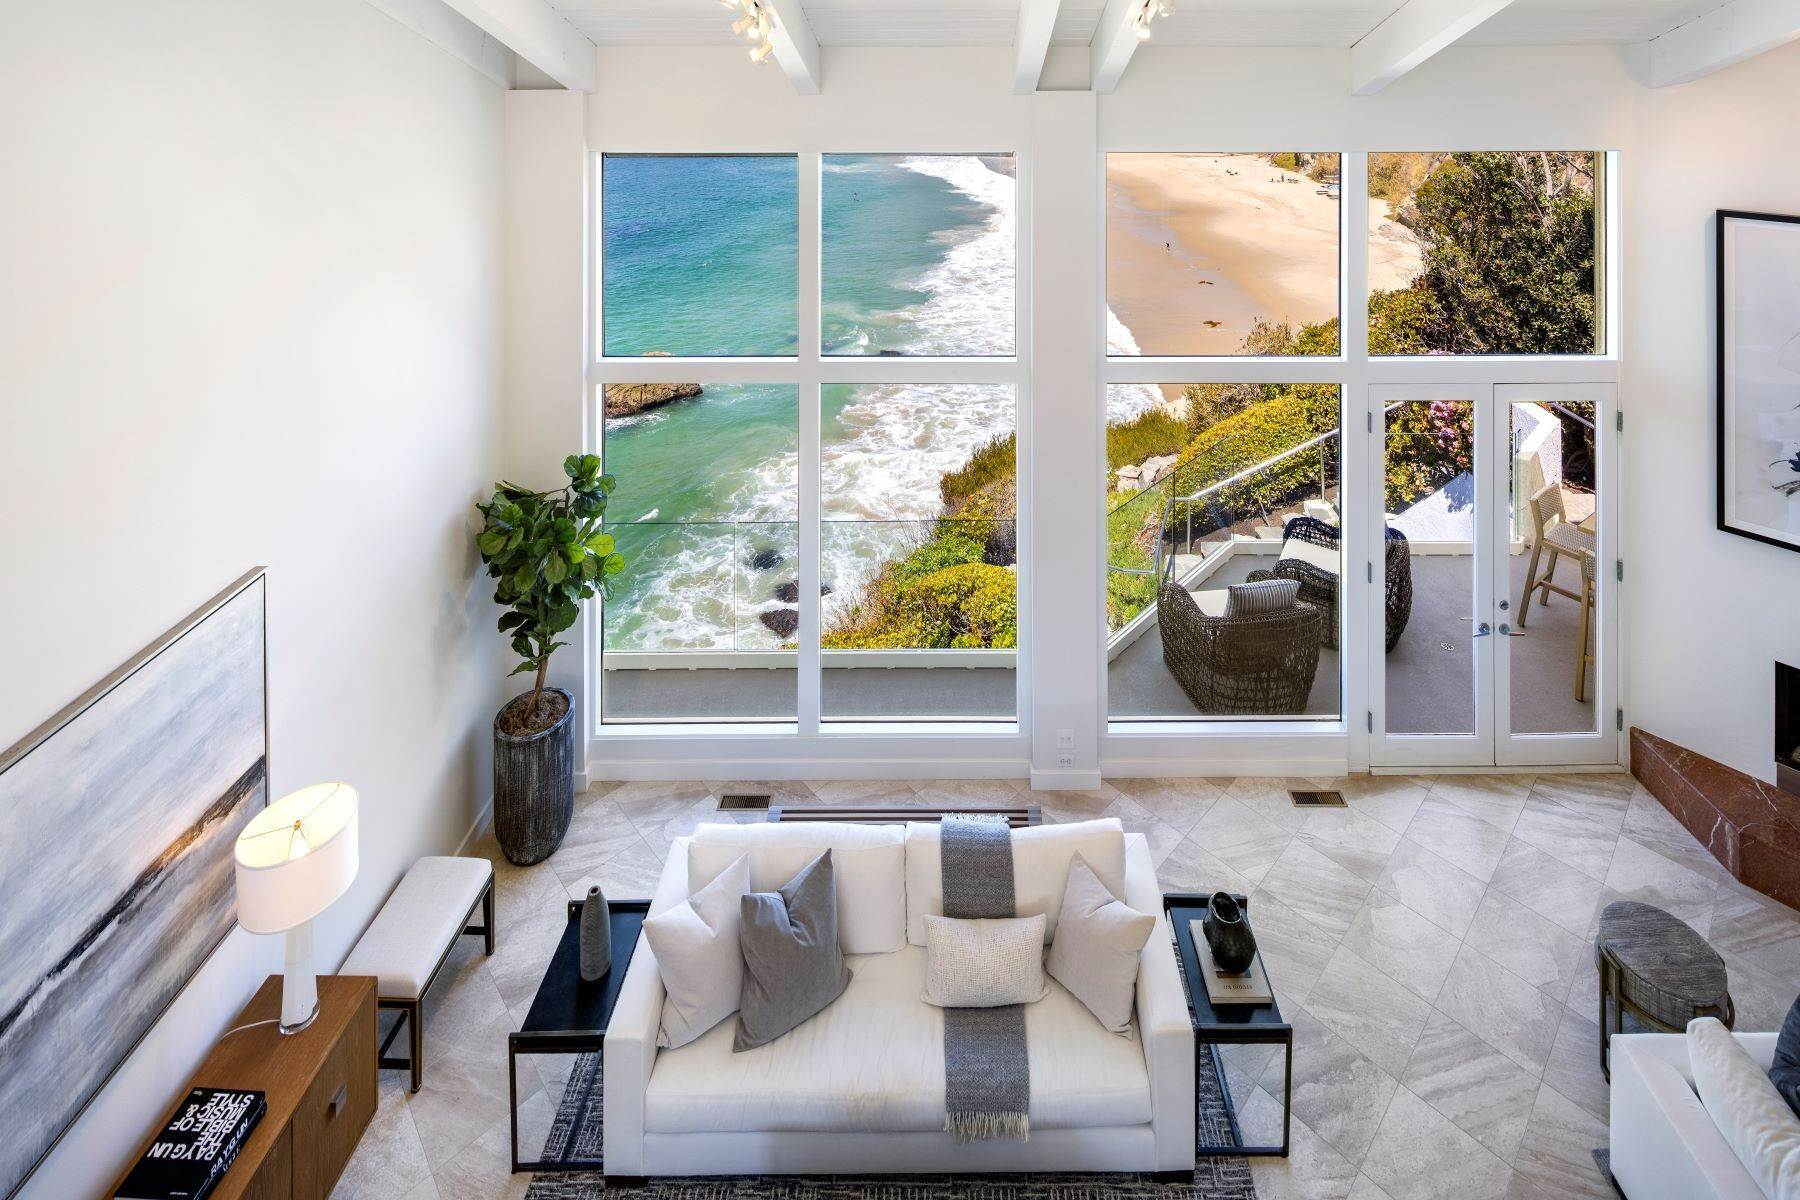 13. Single Family Homes for Sale at 112 South La Senda Drive, Laguna Beach, CA 92651 112 South La Senda Drive Laguna Beach, California 92651 United States